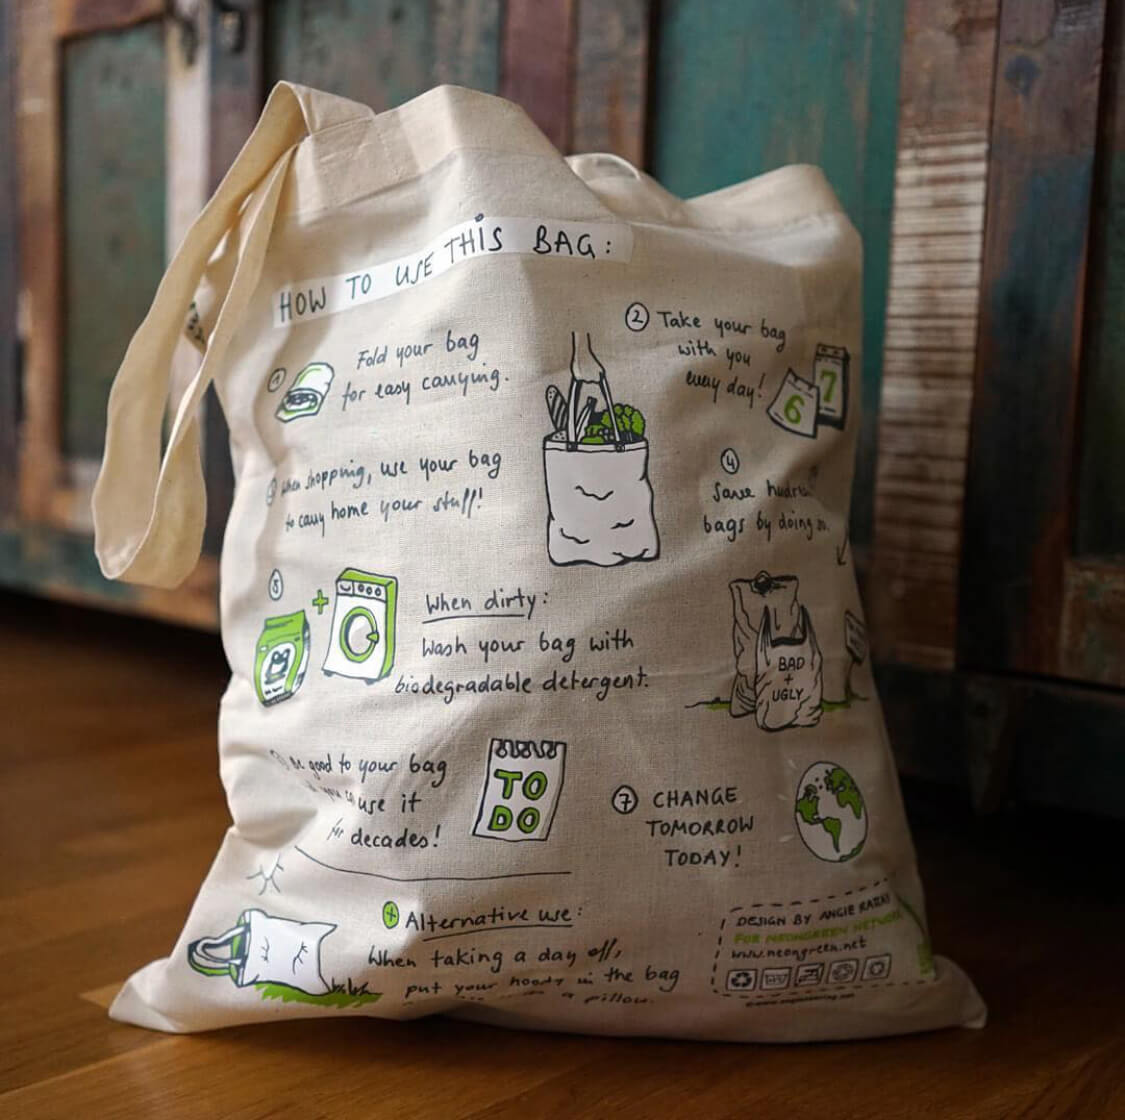 Howtousethisbag-foto